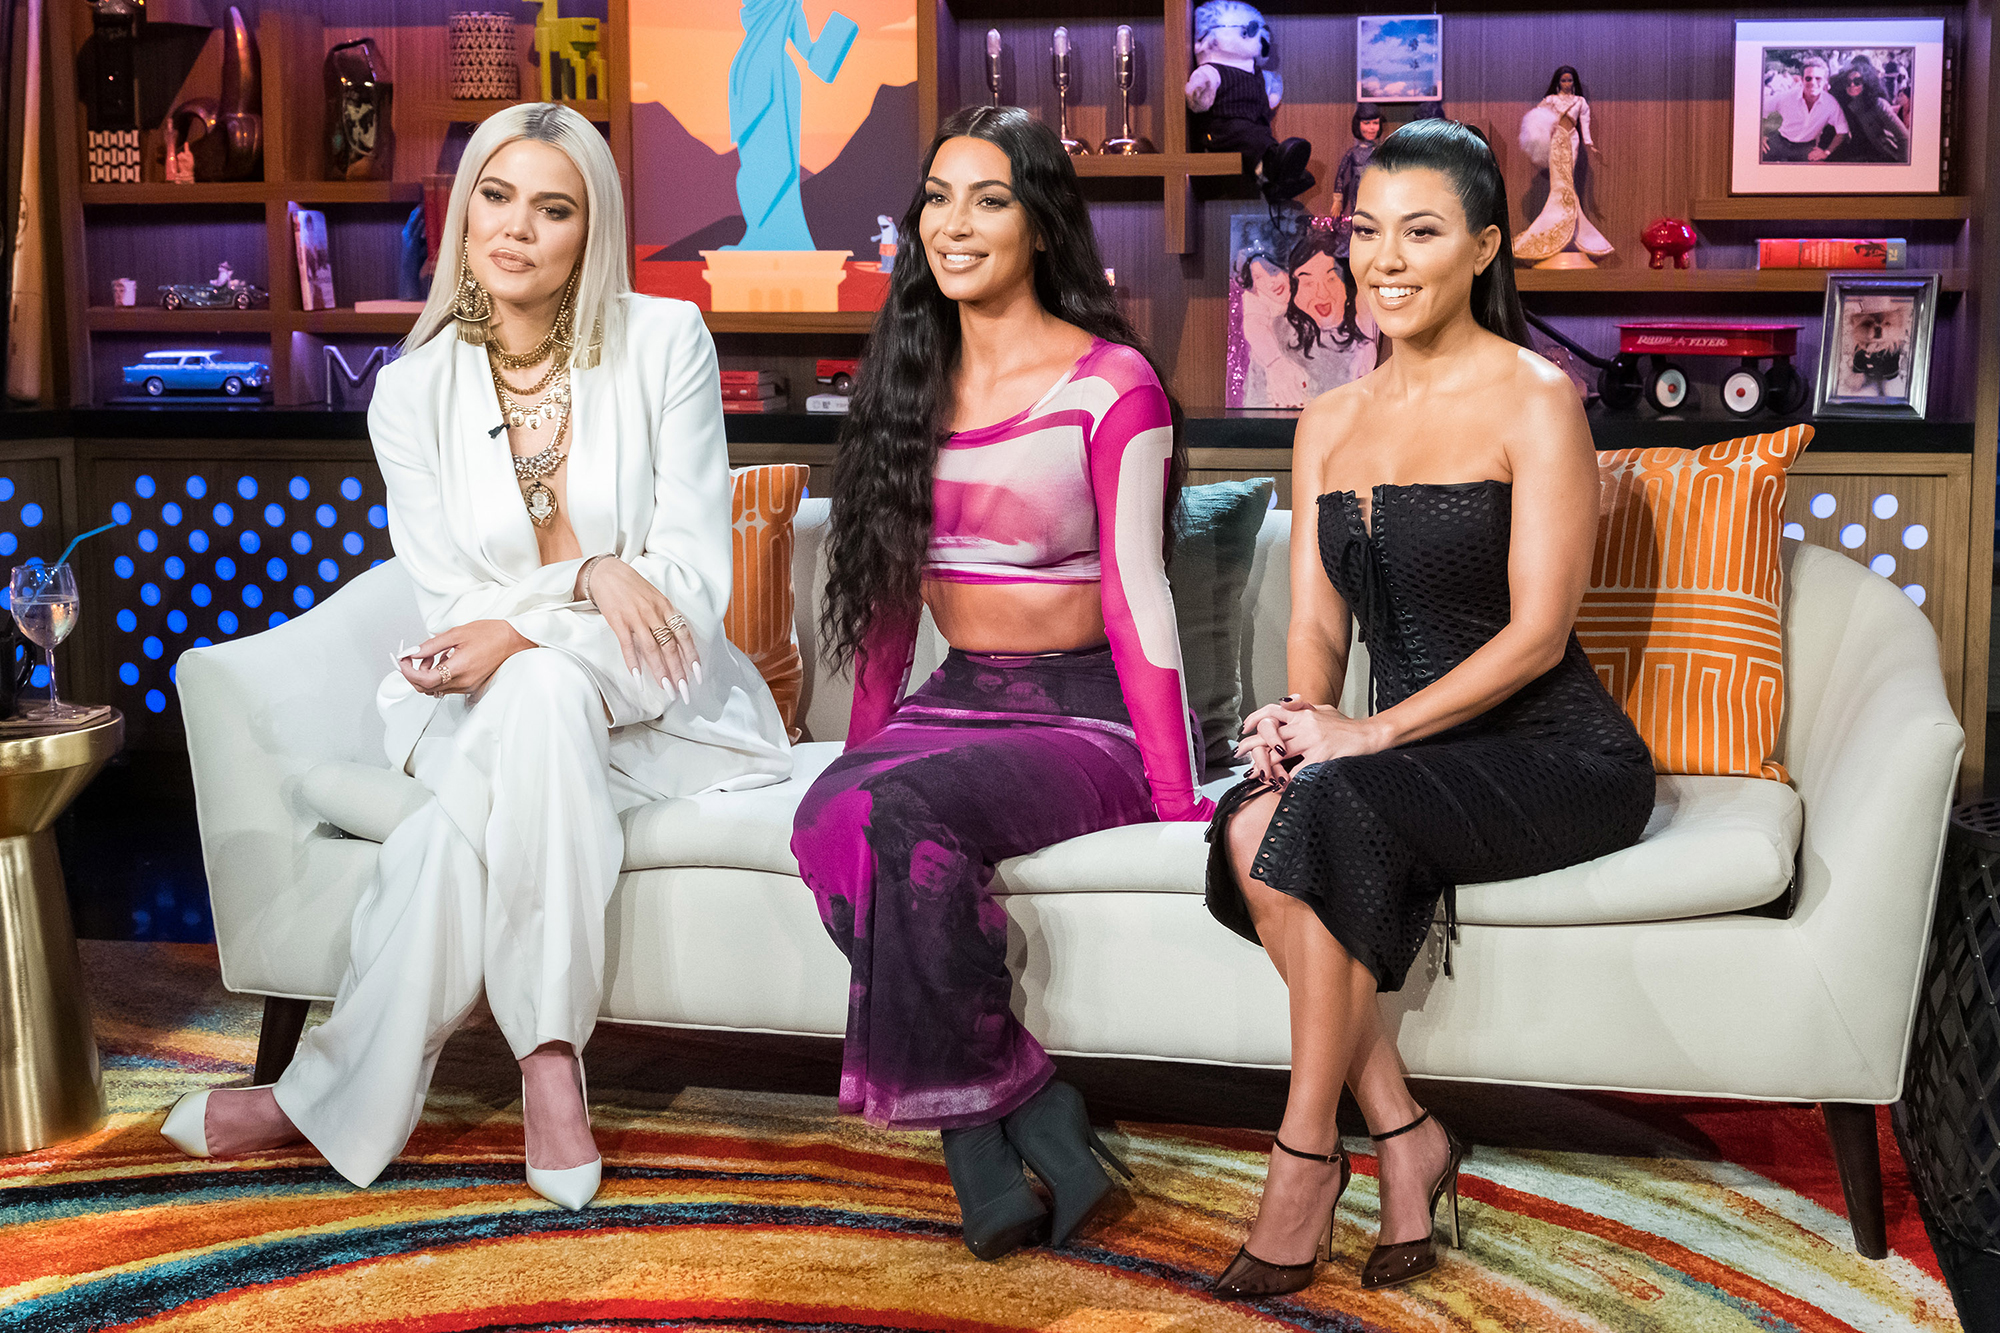 Celebrity Siblings - First making a splash on the E! network in 2007 with their reality show Keeping Up With the Kardashians , the trio have turned themselves into bonafide business moguls, with a lifestyle site, a denim line, books, spinoff shows and a makeup line to their names.